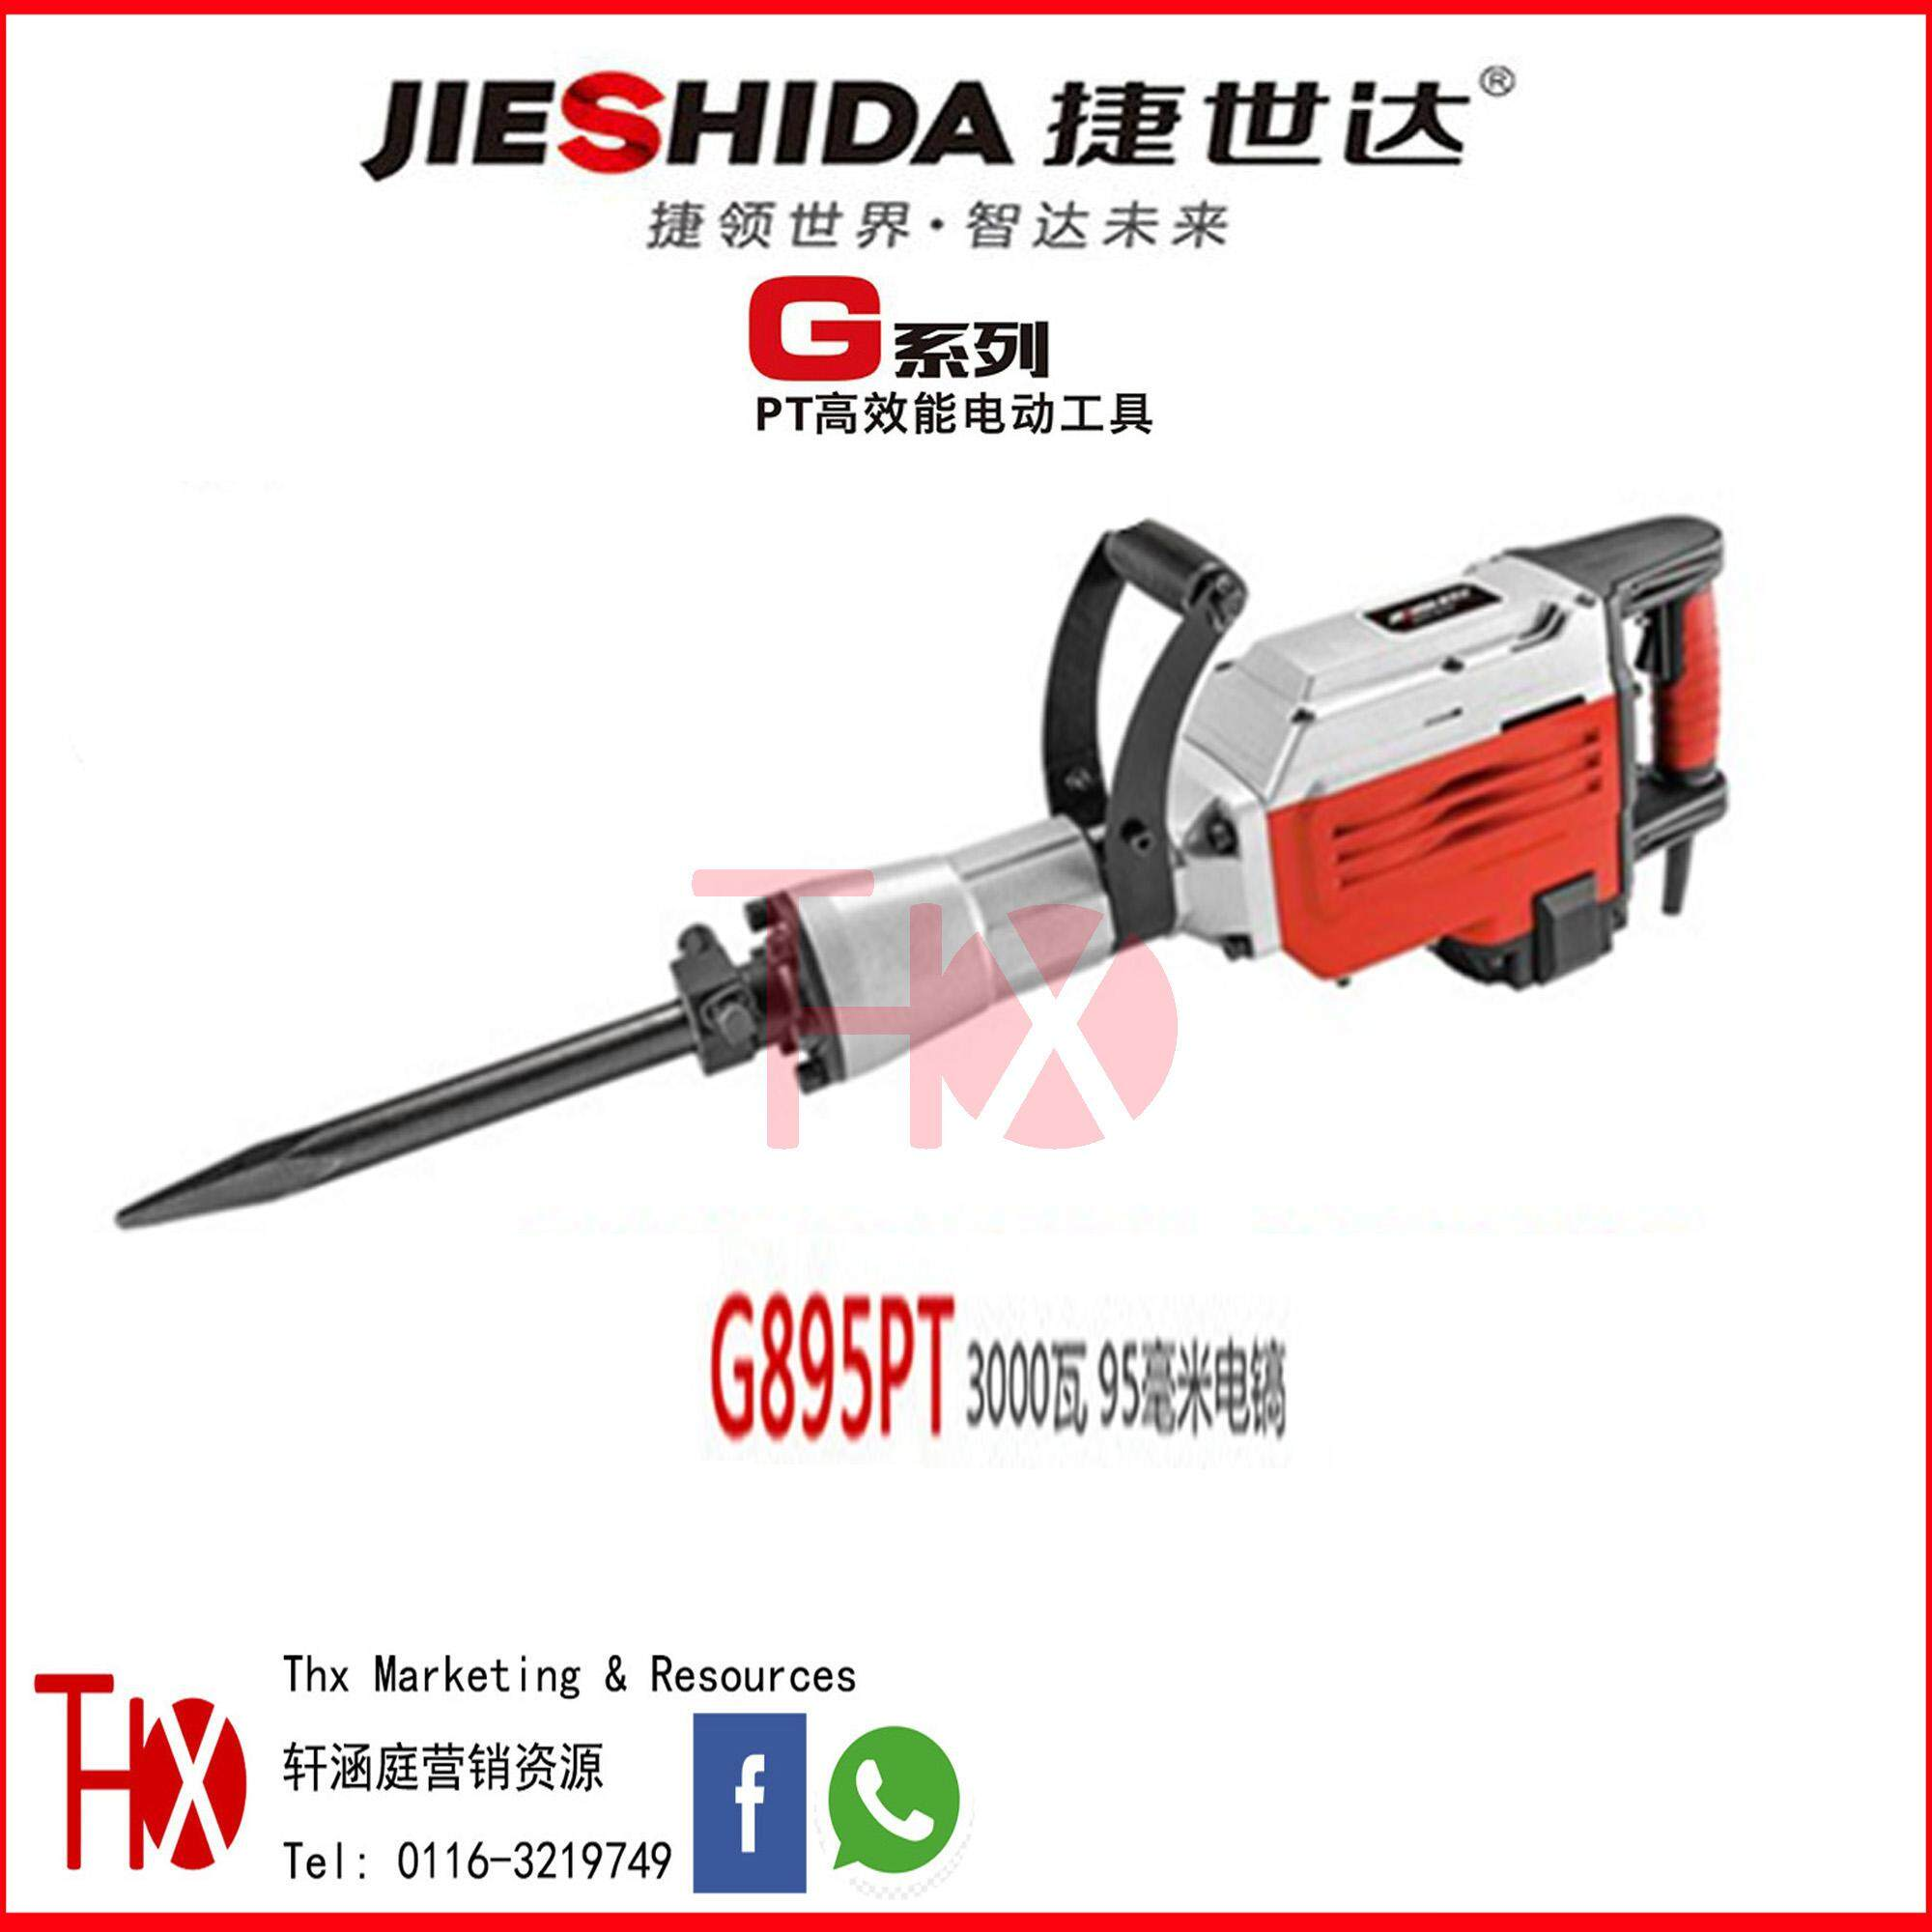 Jieshida Professional  Percussion Demolition Hammer 3000watt 55J G895PT